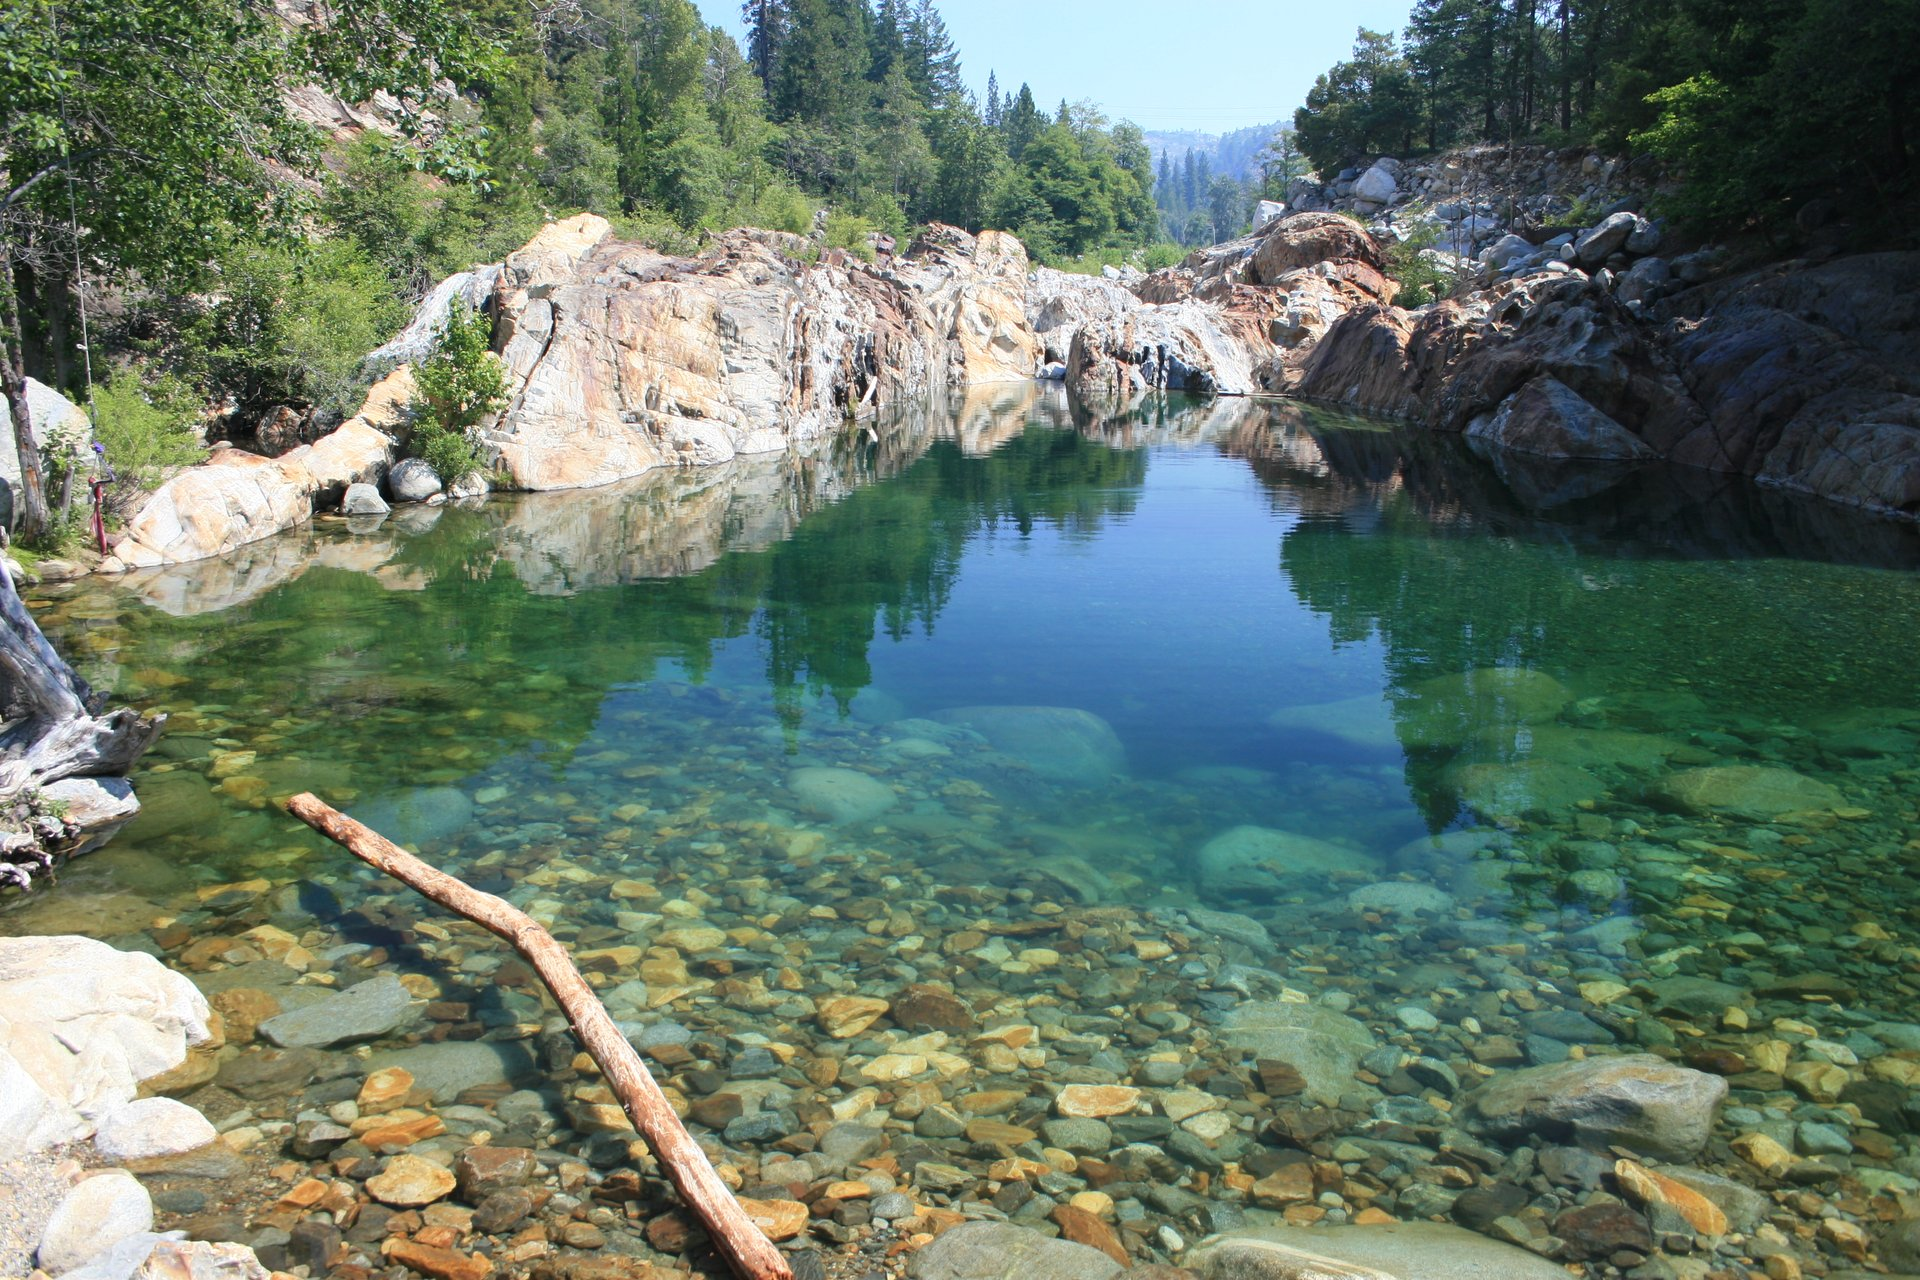 Emerald Pools Recreation Area on the Yuba River below Lake Spaulding, about 11 miles from the Loch Leven Trailhead 2020